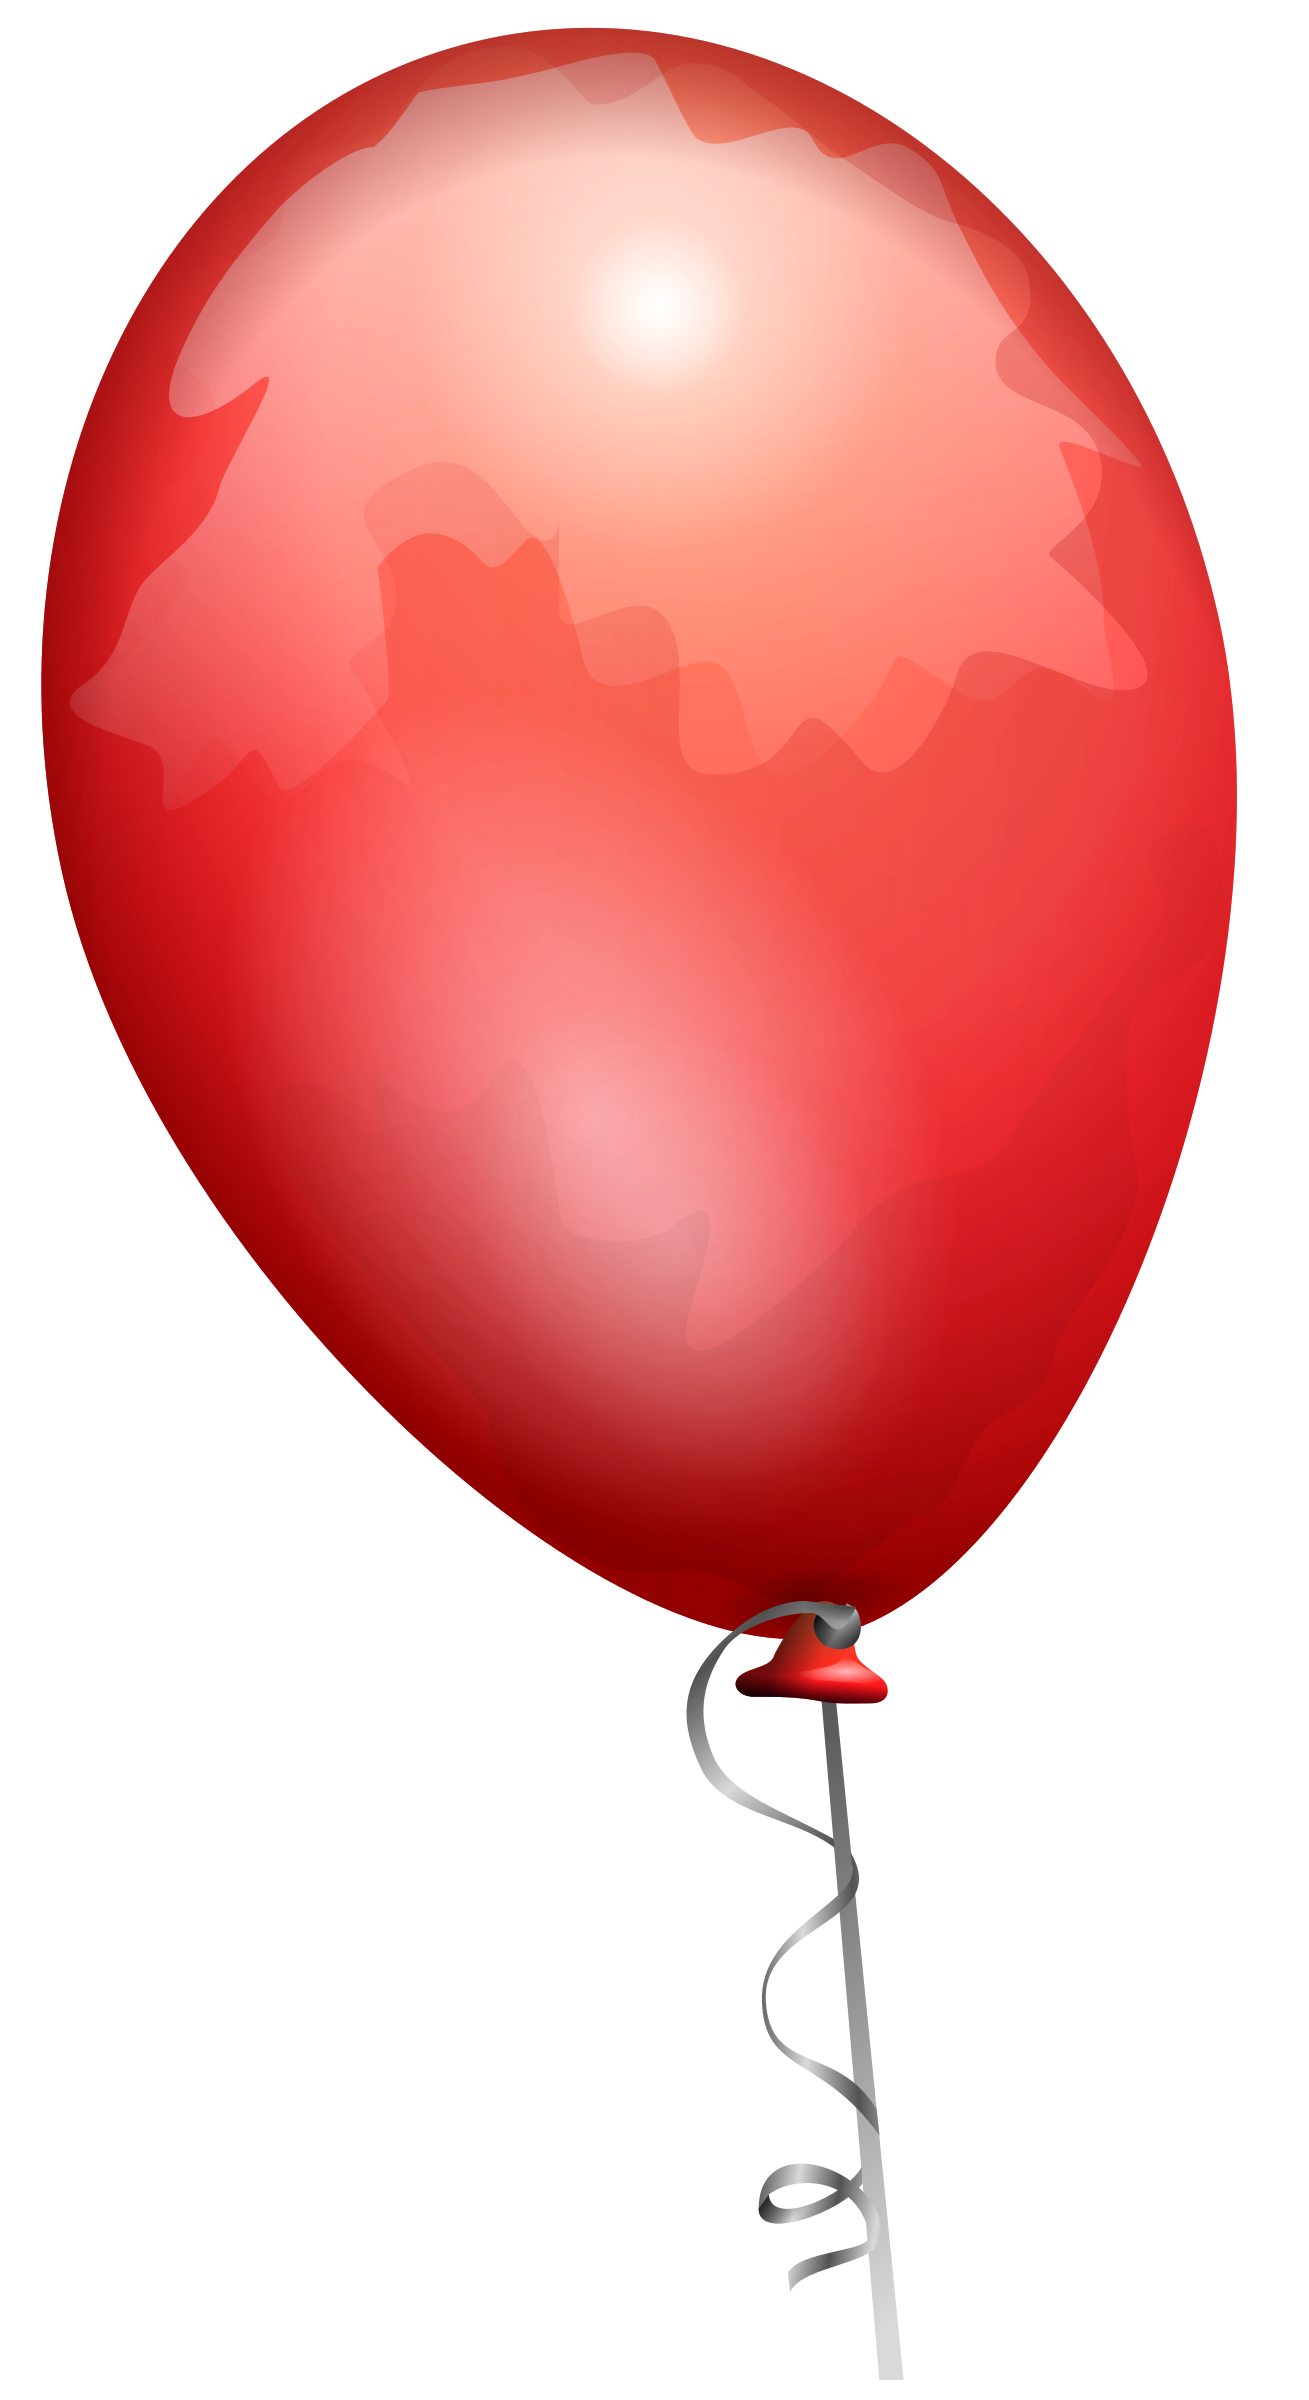 Red balloon by AJ